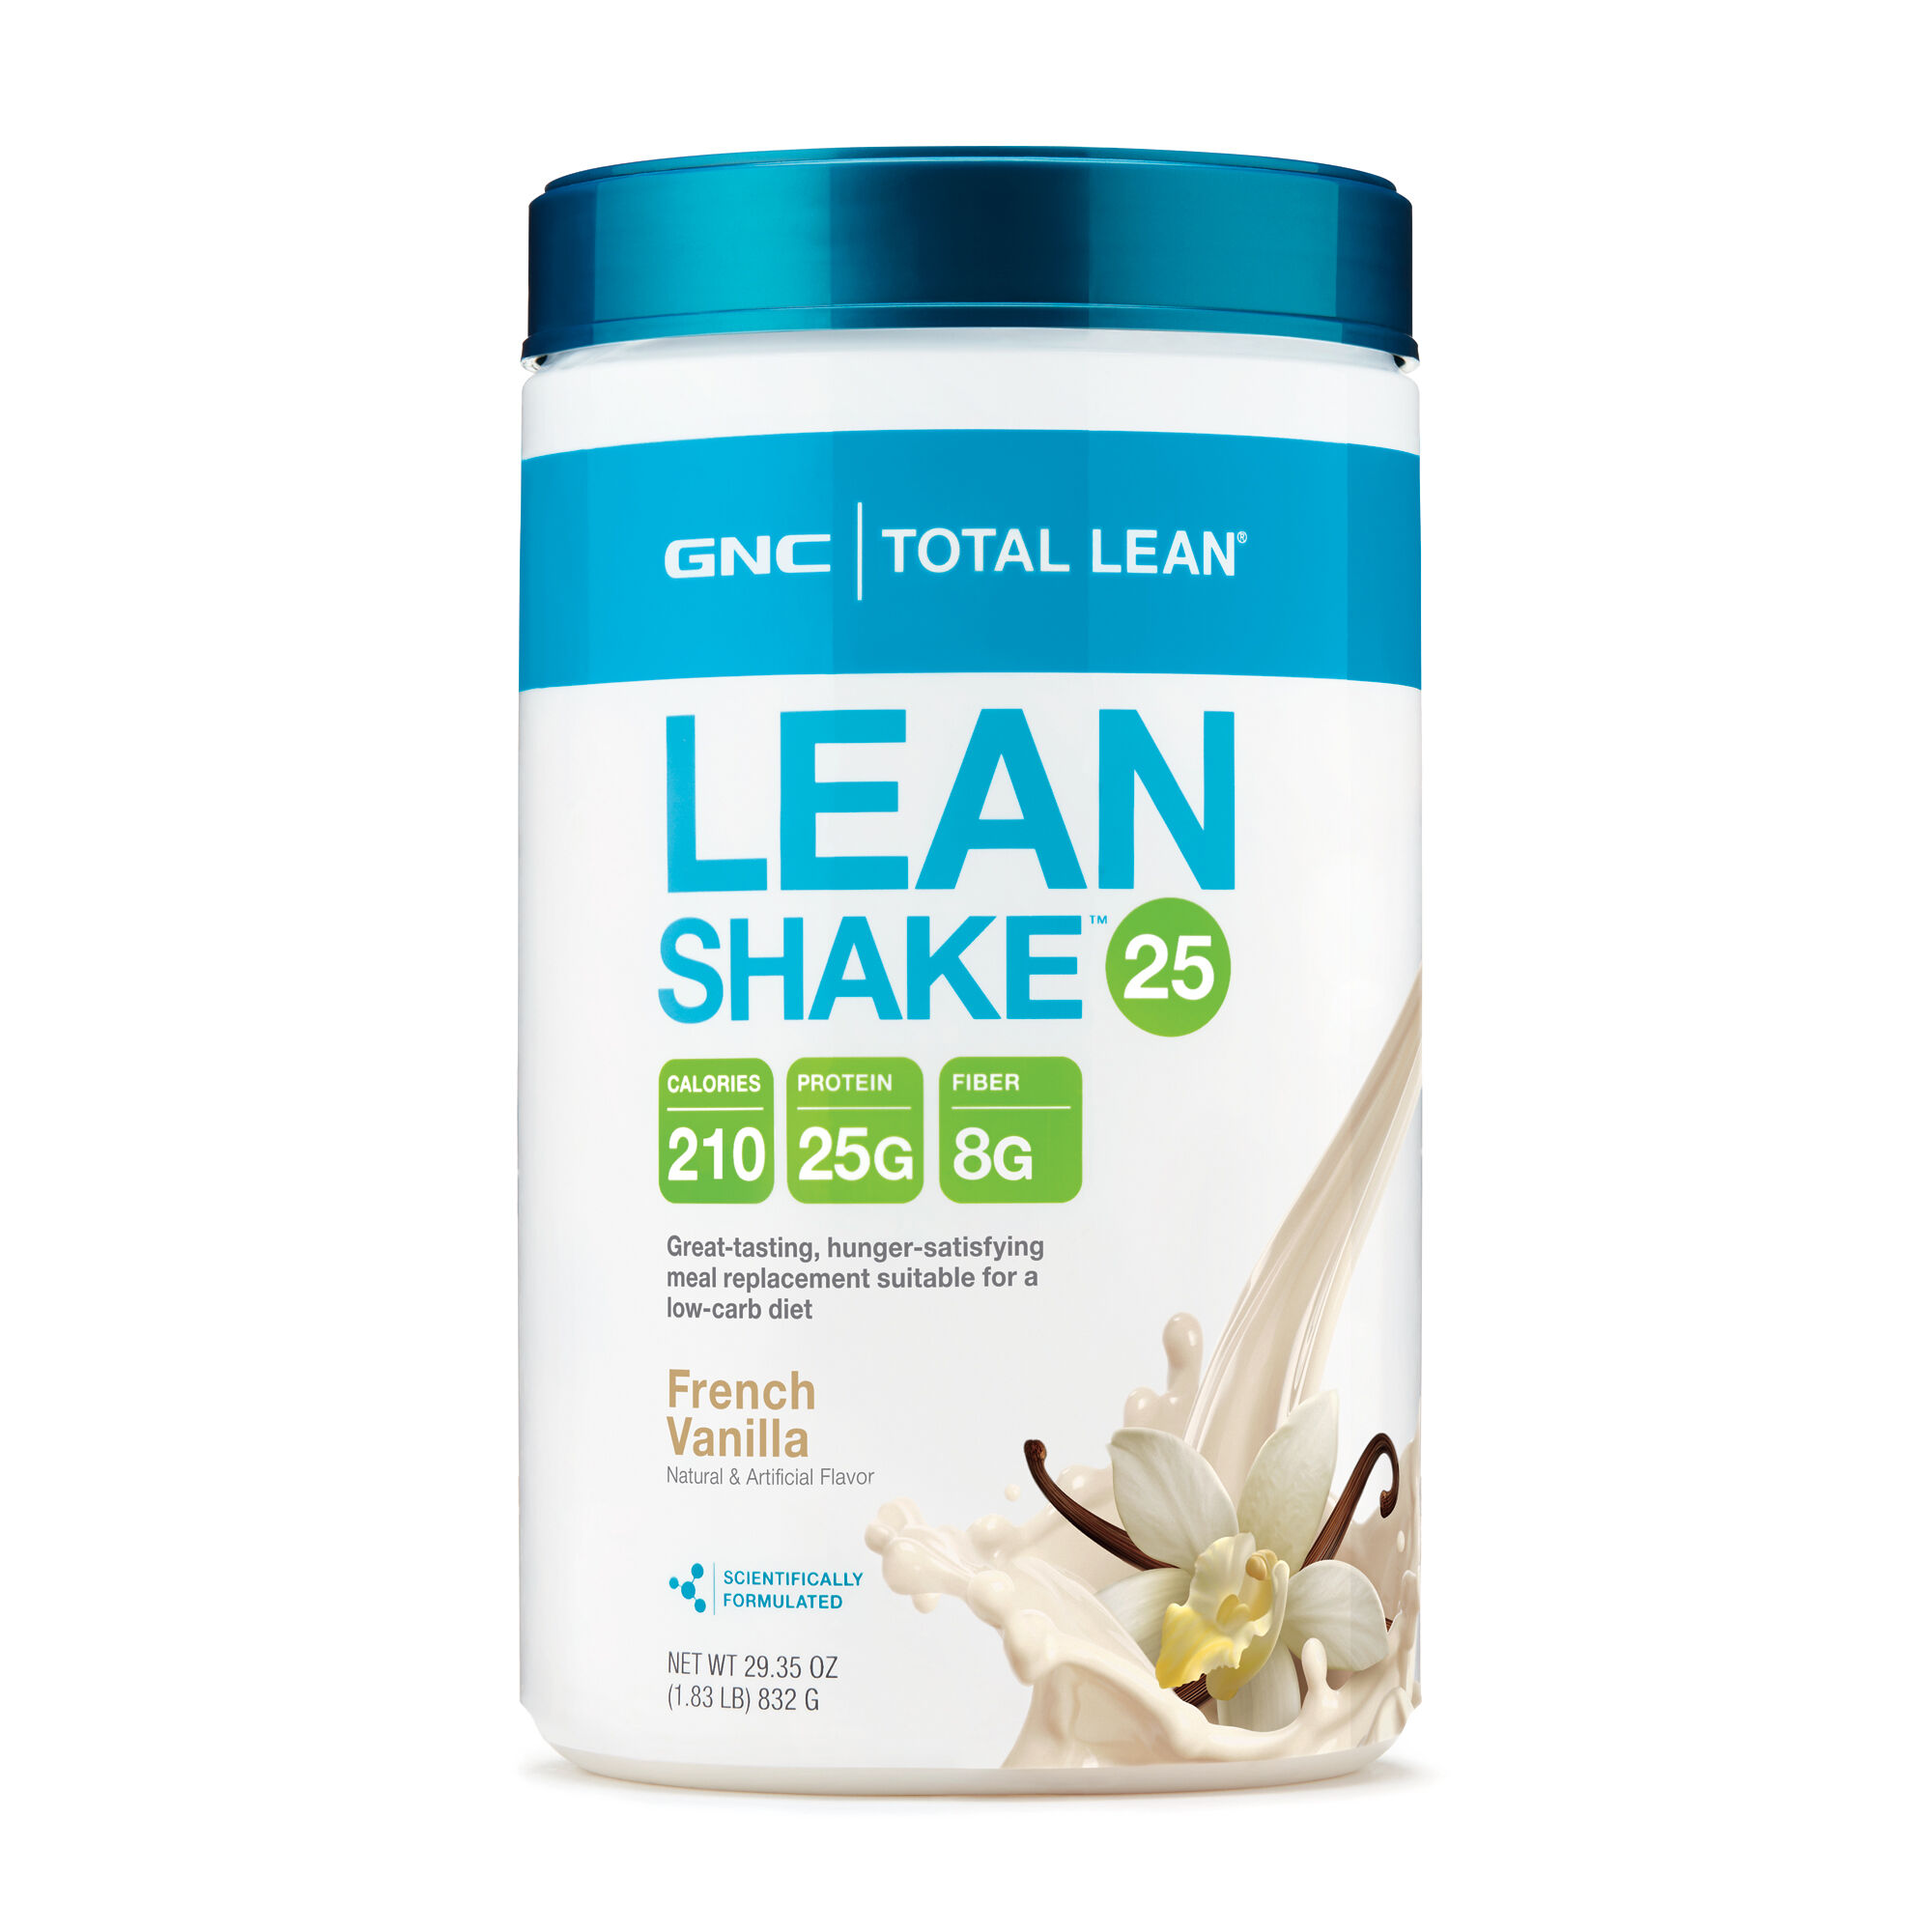 BOGO 50% off GNC Total Lean Lean Shake 25